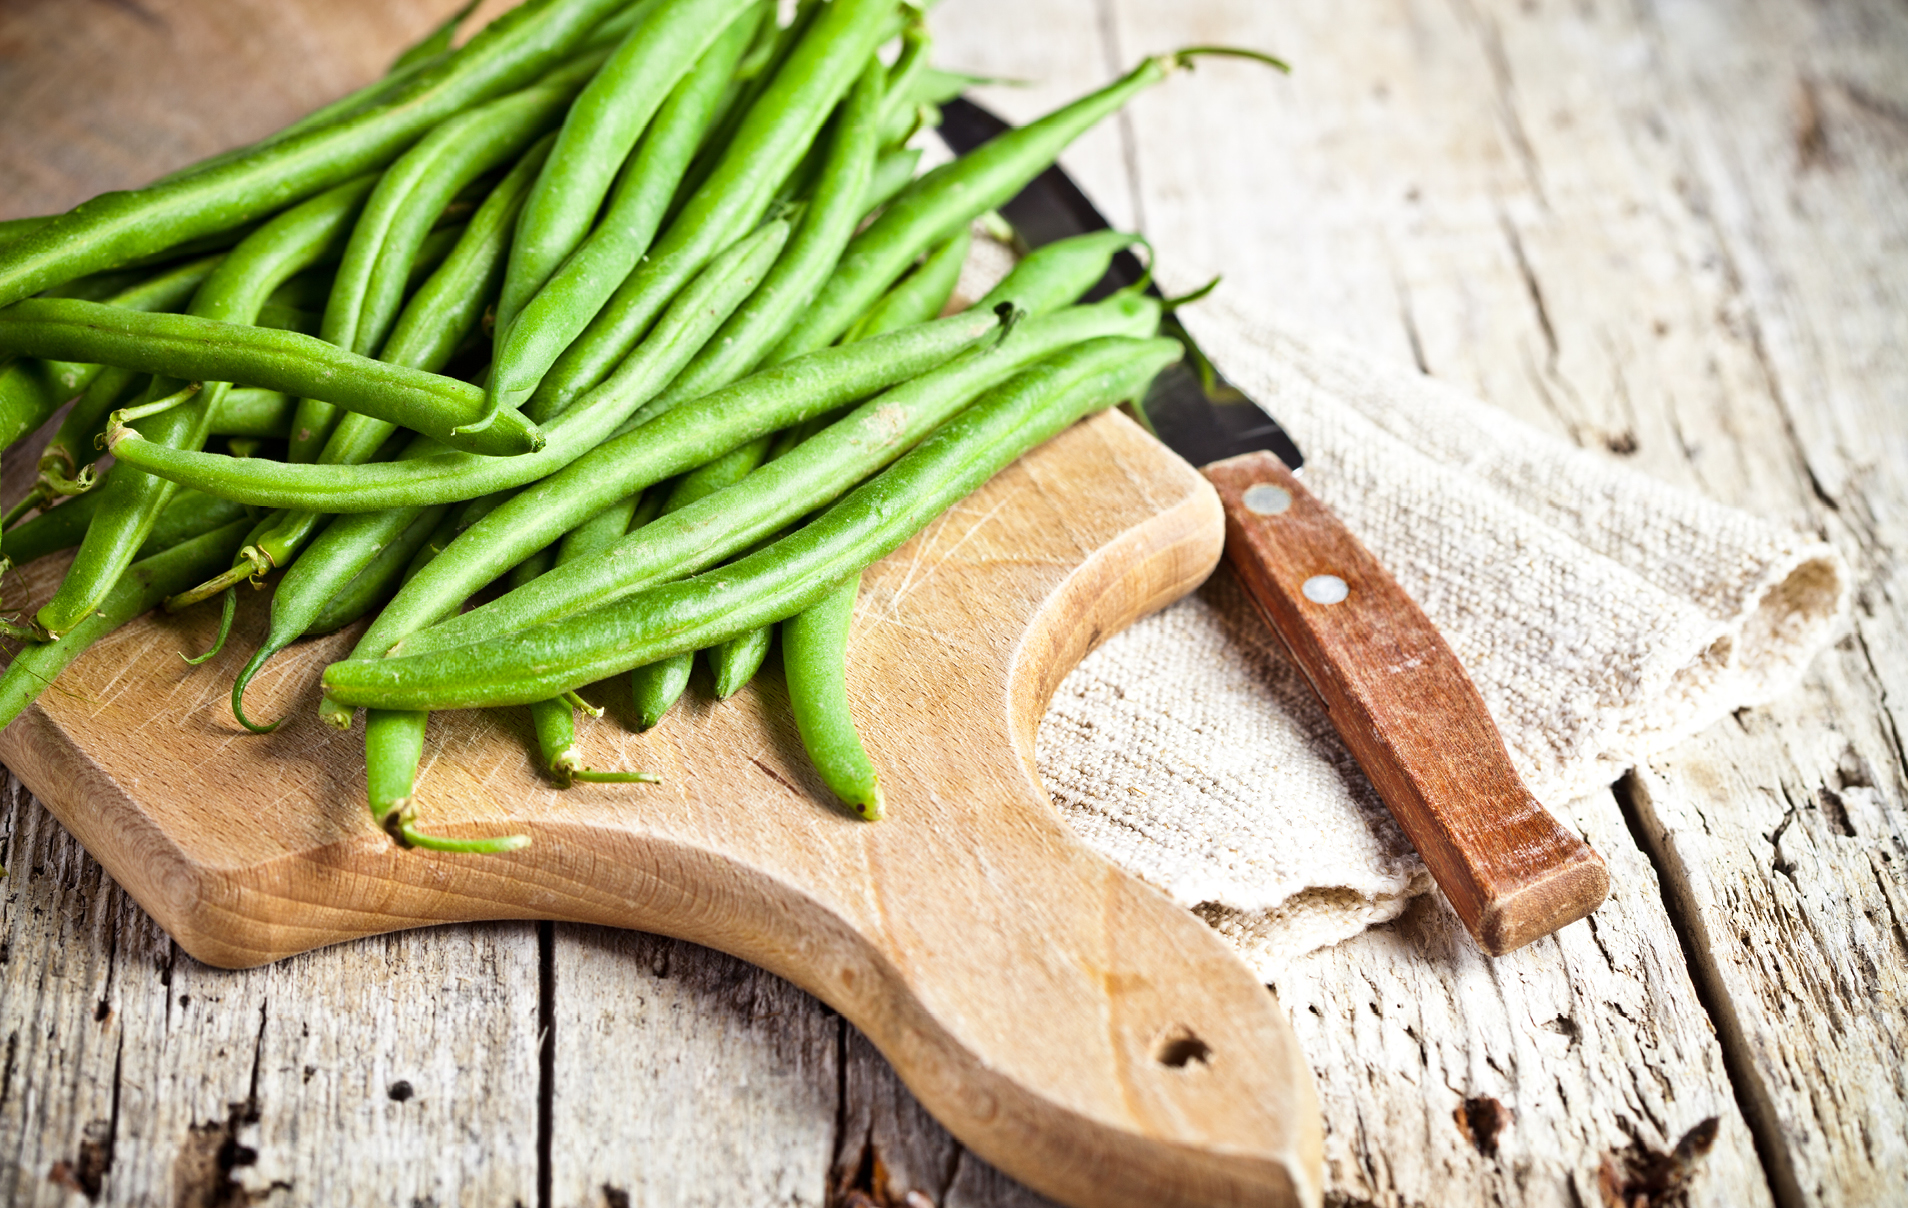 There are over 130 varieties of green beans.